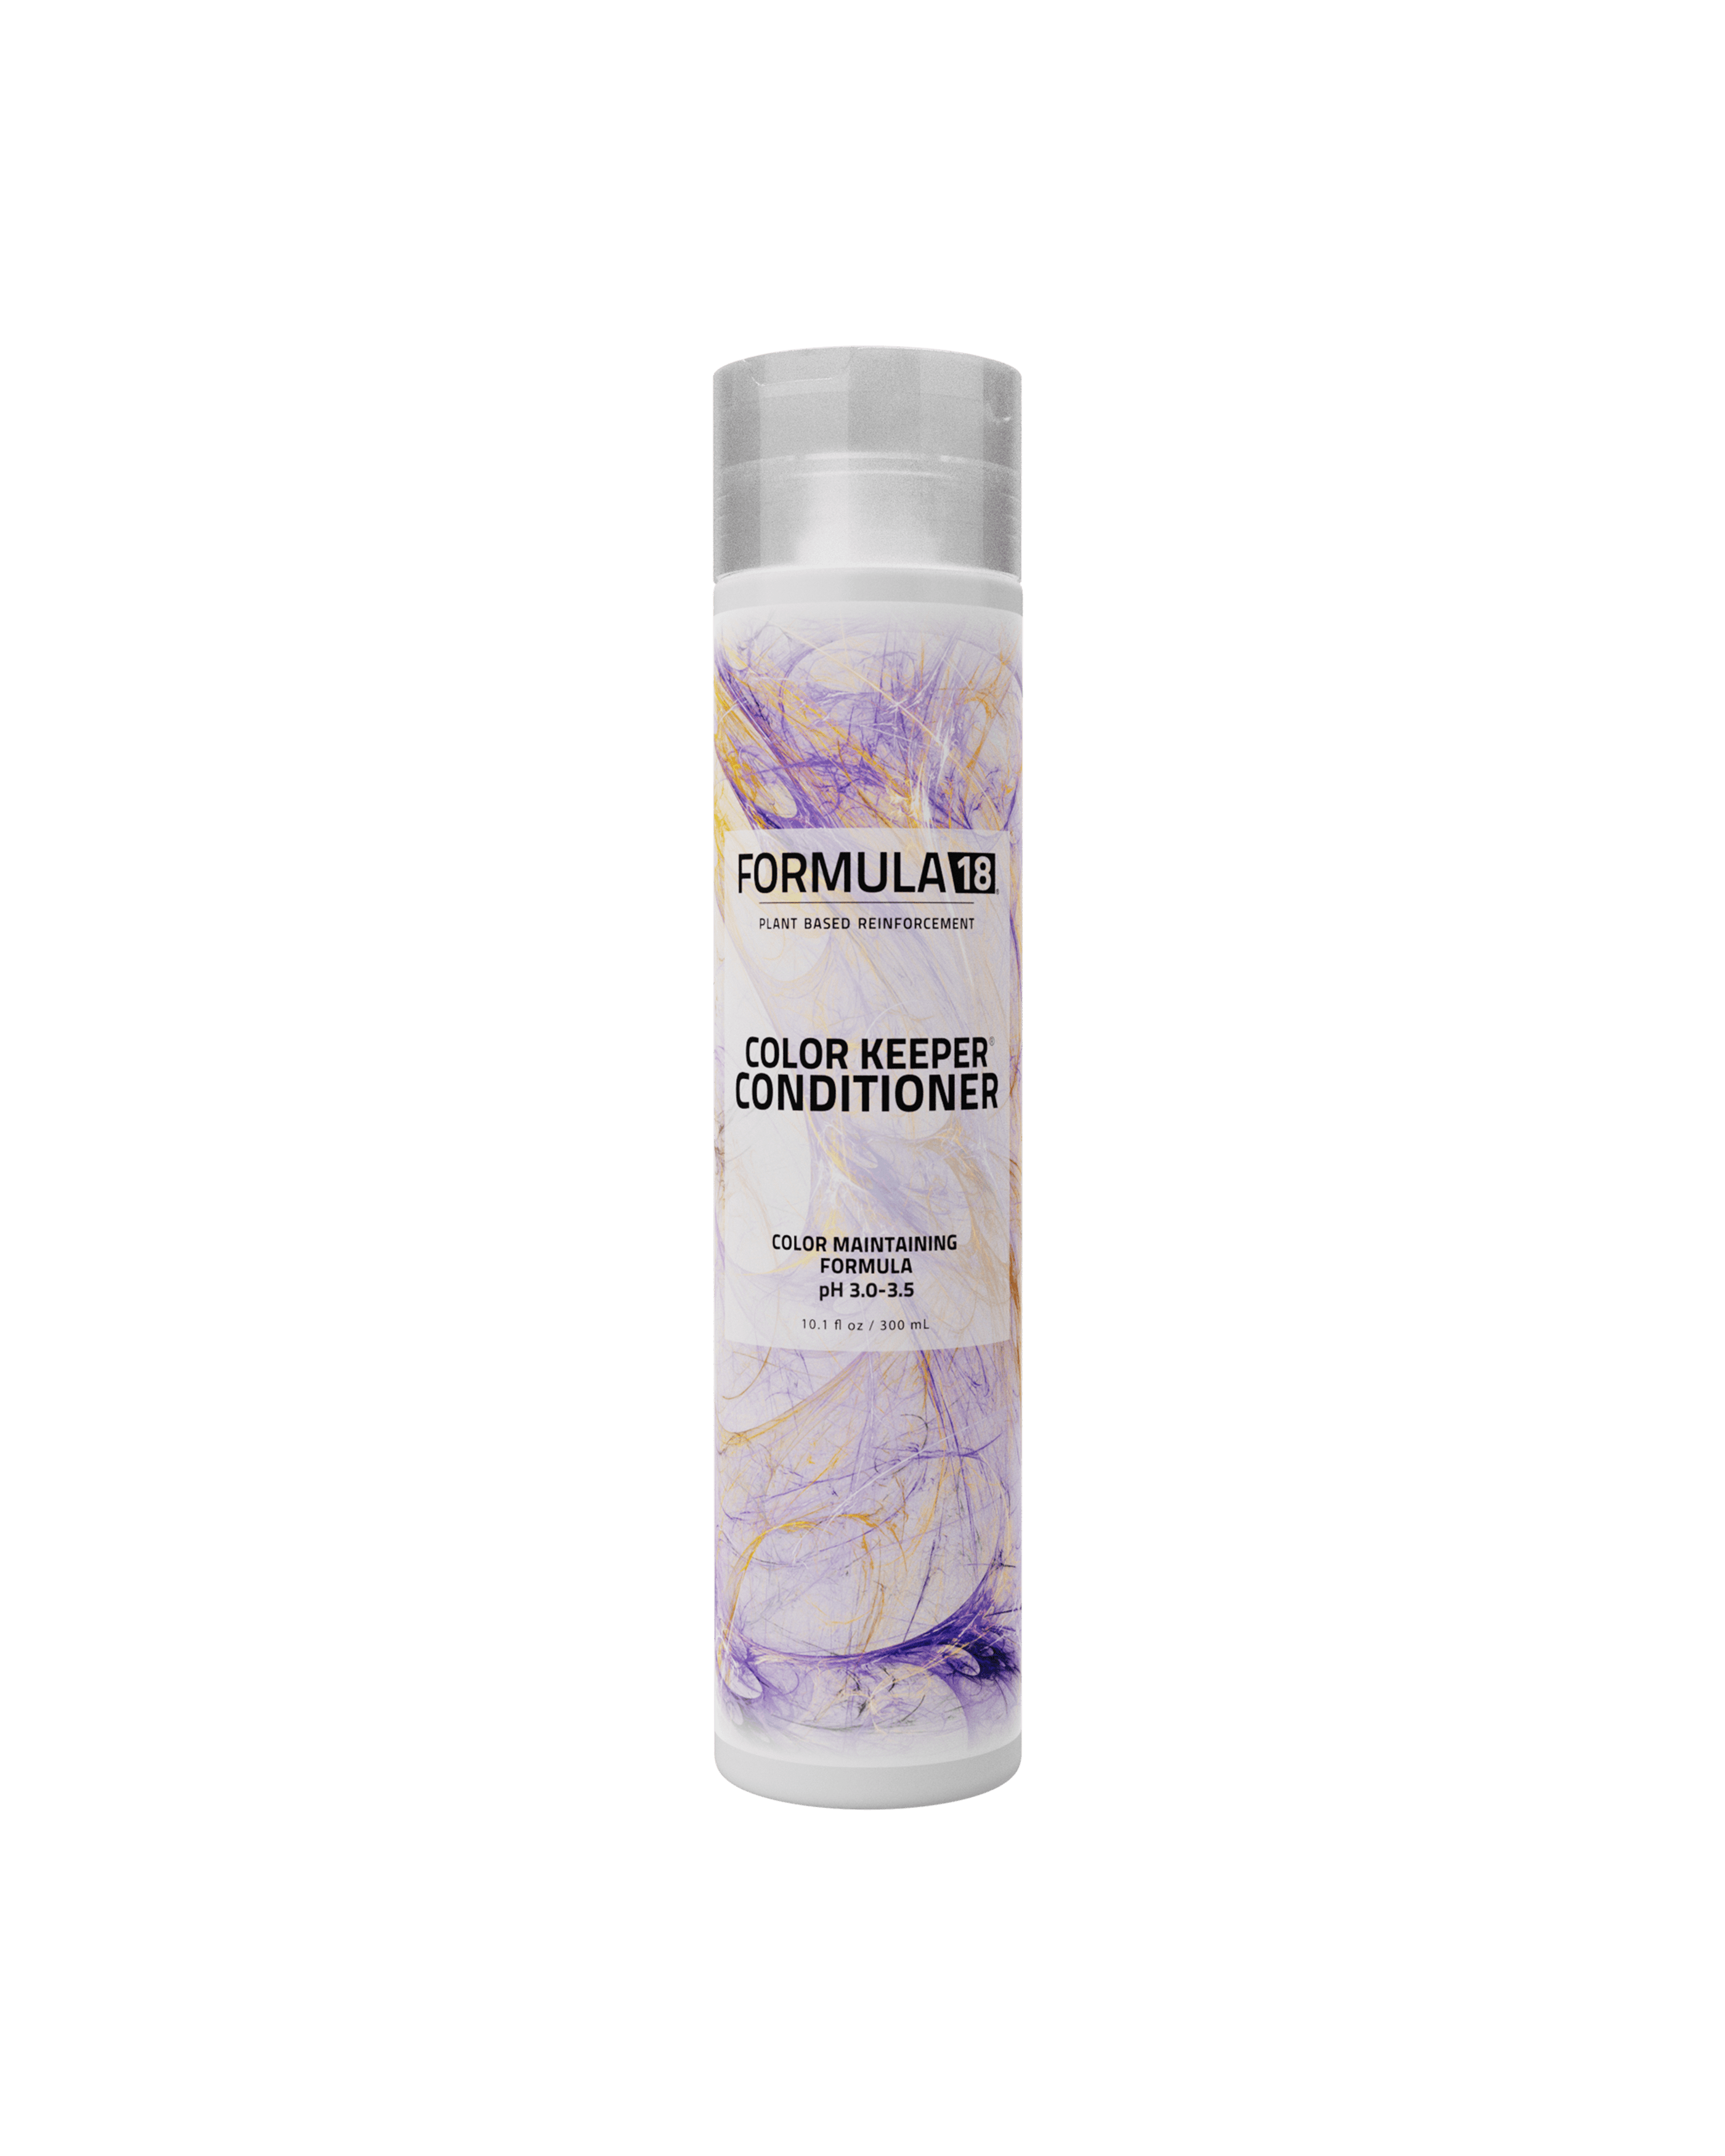 Color Keeper Conditioner